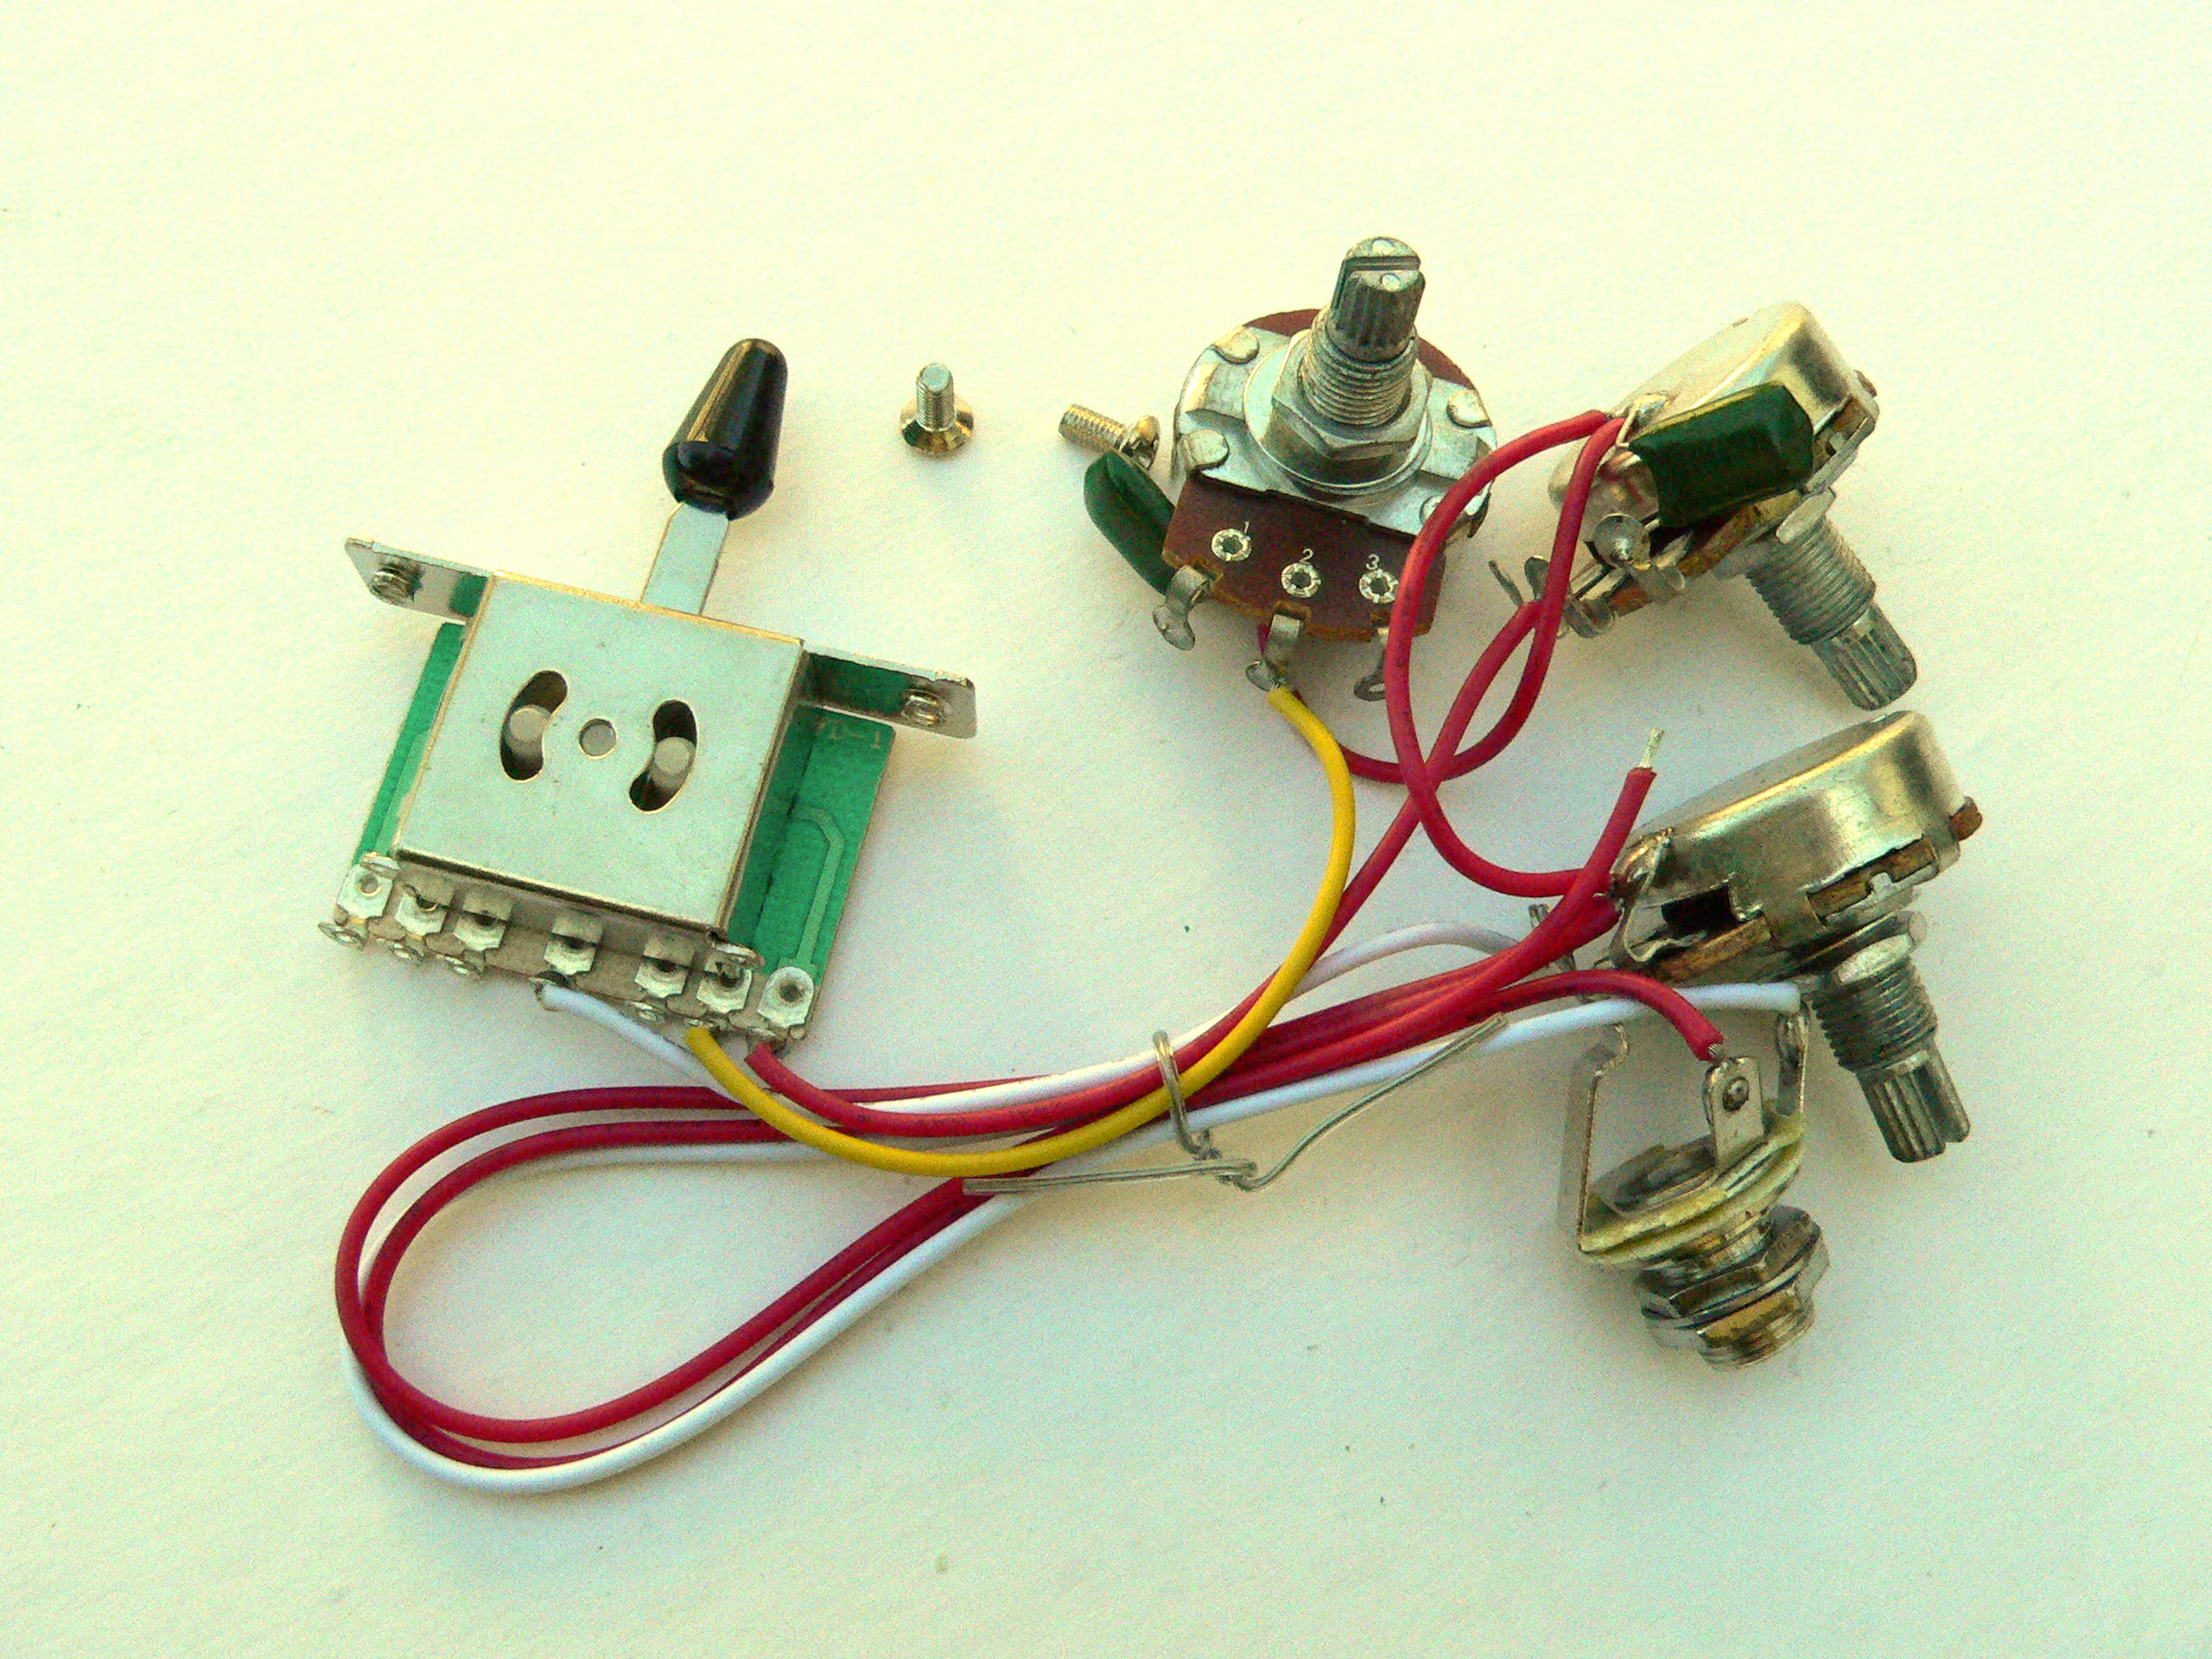 24mm 5 Way Wiring Harness Kit For Fender Stratocaster Guitar Single American Categorie